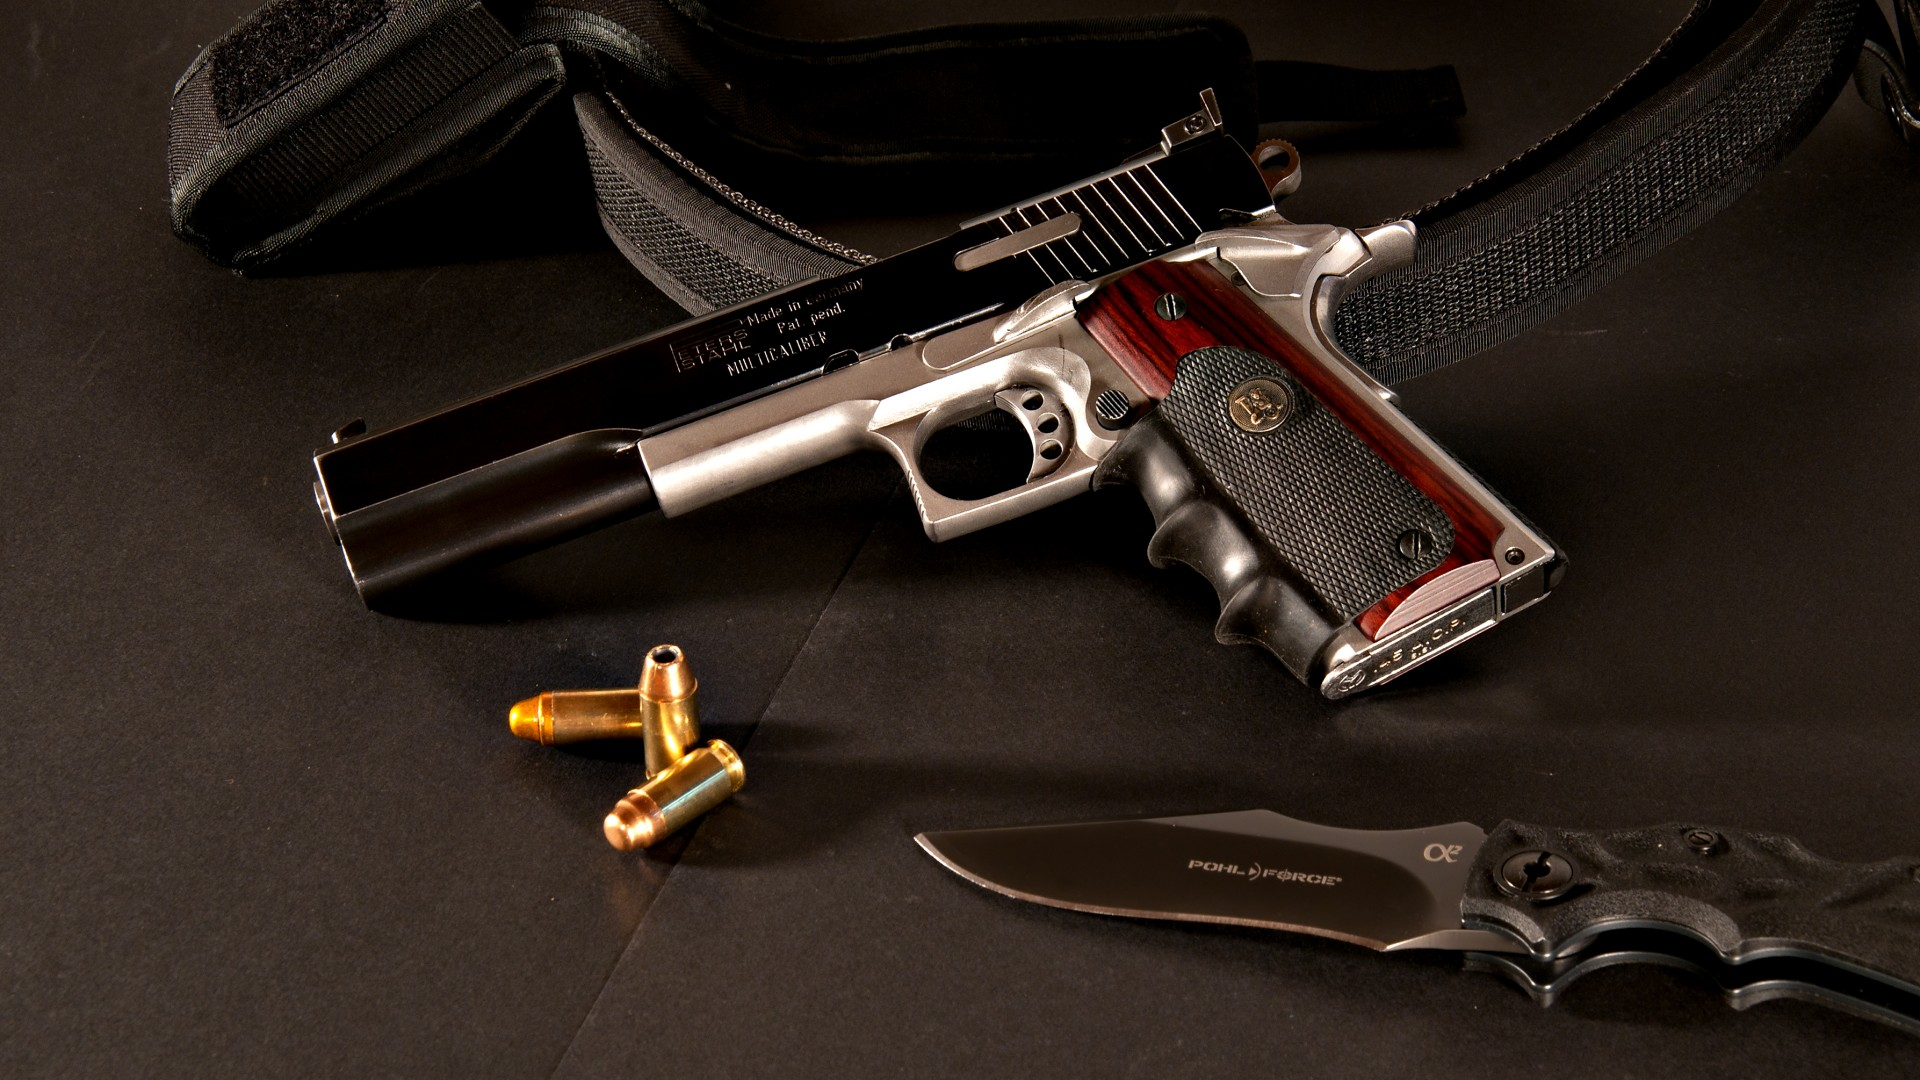 Peters Stahl, pistol, custom, .45, ACP, Colt M1911, Pohl Force, Alpha 2, knife (horizontal)